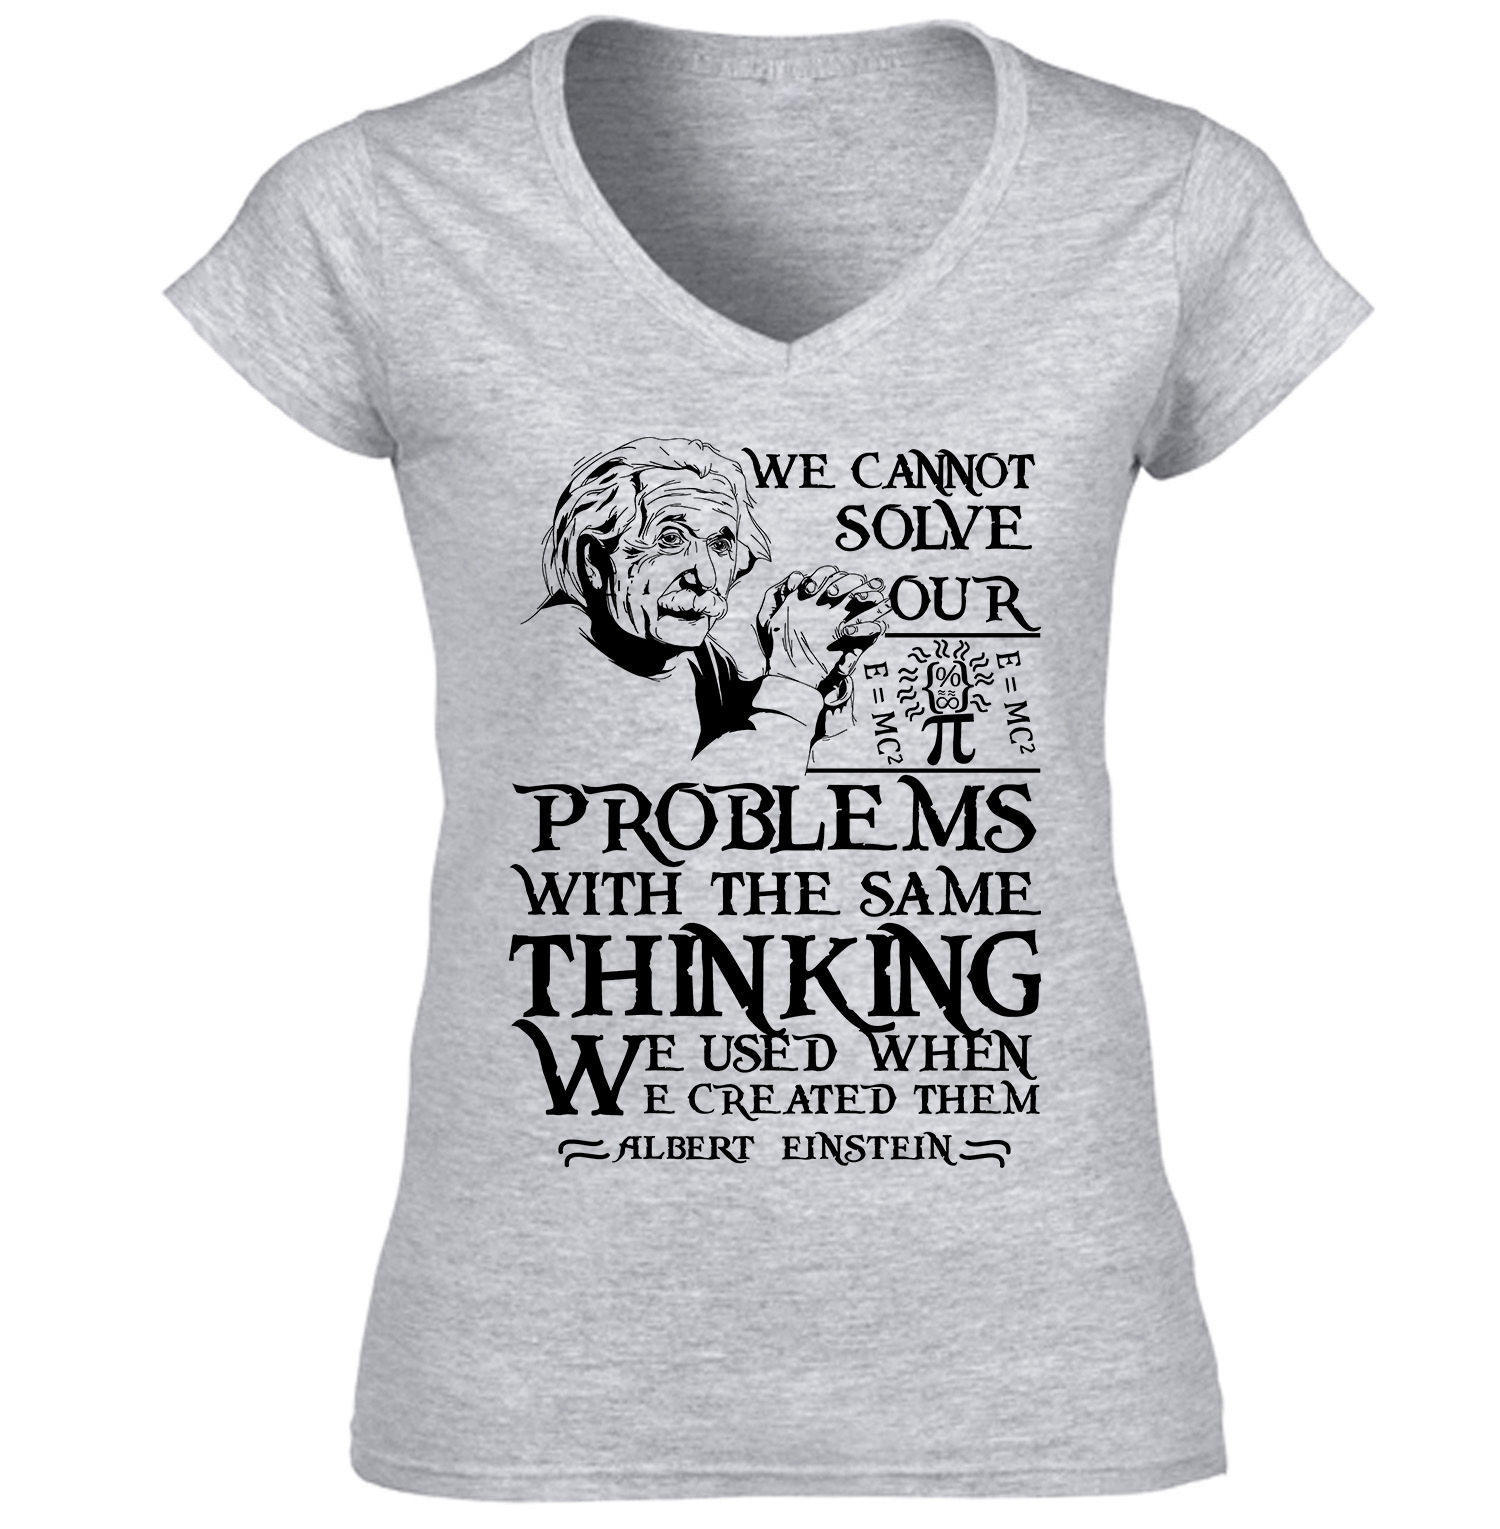 EINSTEIN ALBERT PROBLEMS QUOTE - NEW COTTON GREY TSHIRT S-M-L-XL-XXL